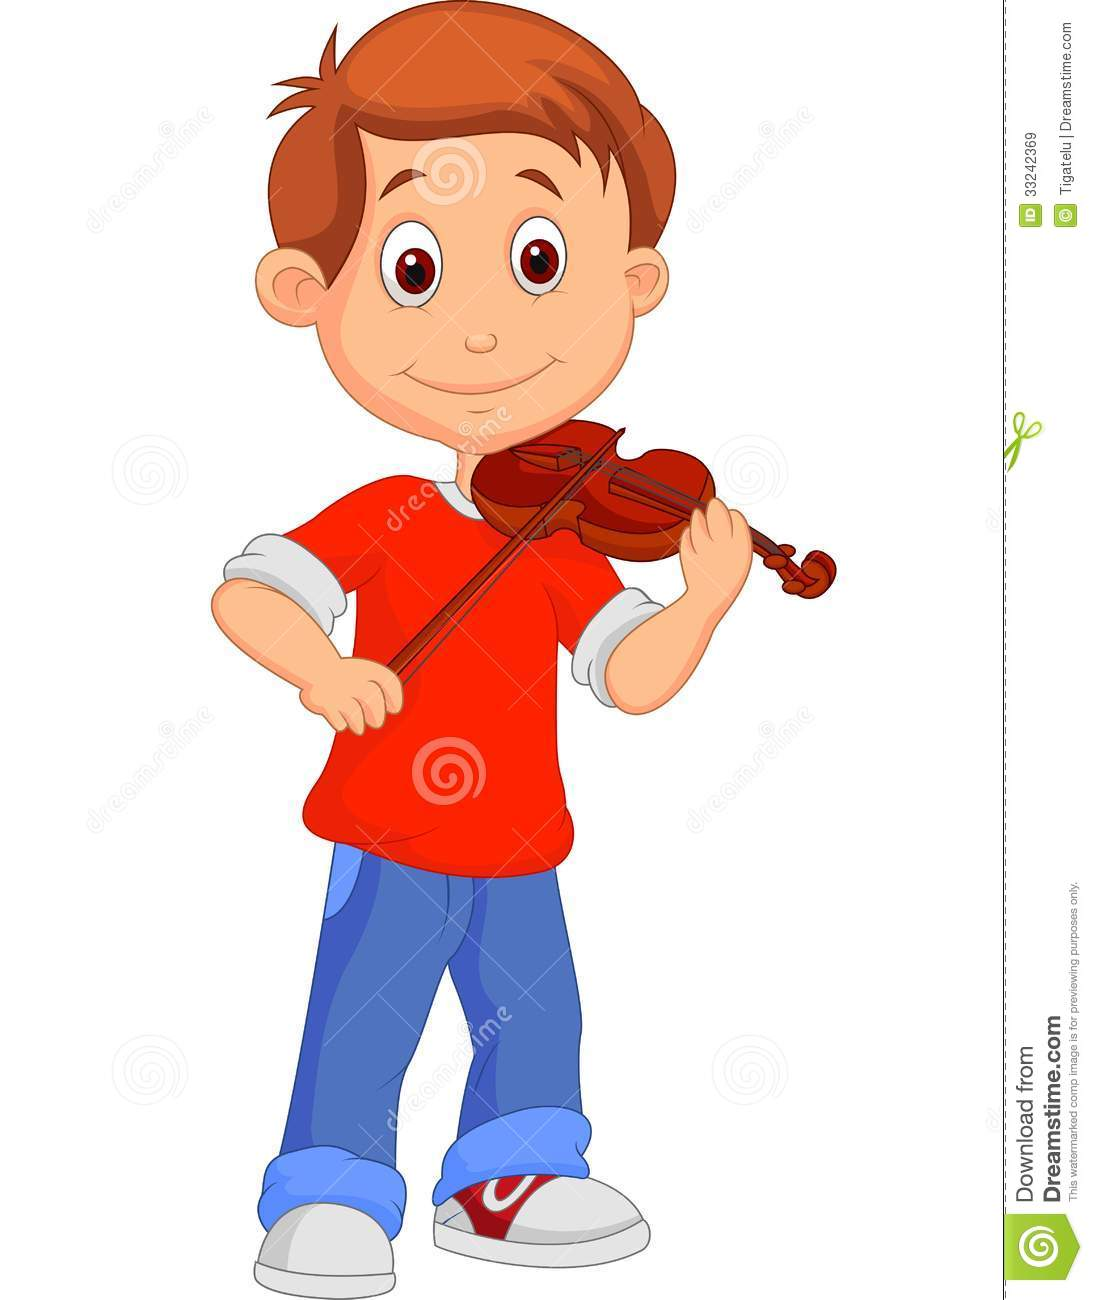 Violin Boy Clipart - Clipart Kid